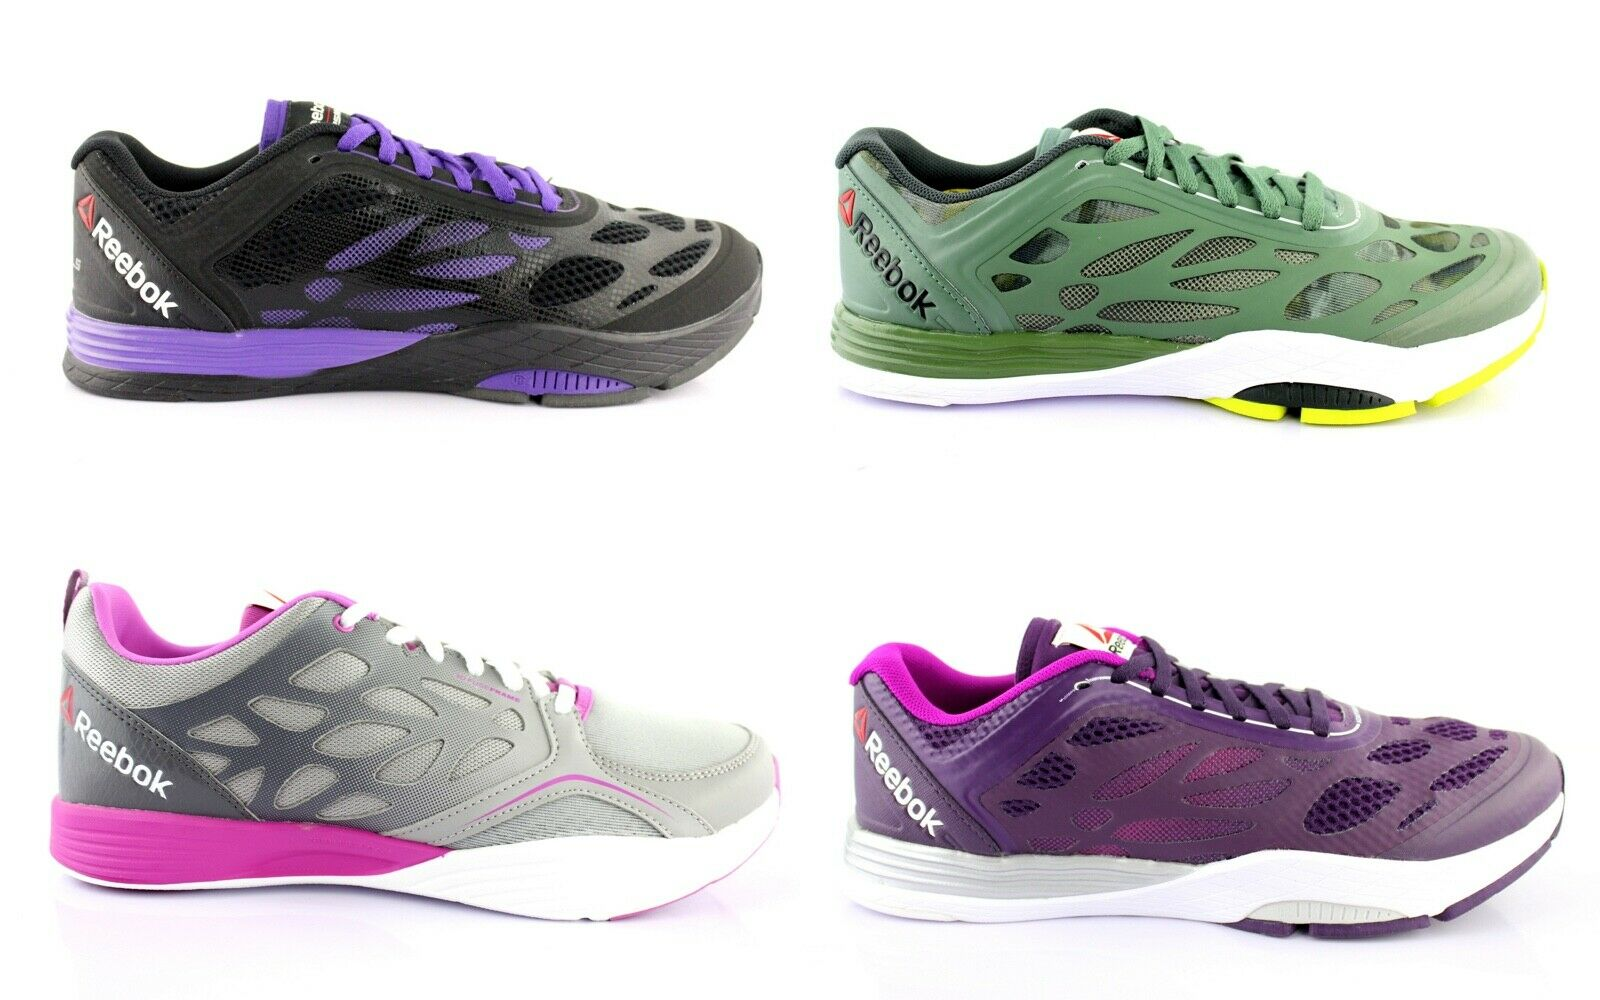 Reebok Cardio Inspire Low Ladies  Training shoes Workoutschuhe shoes  famous brand